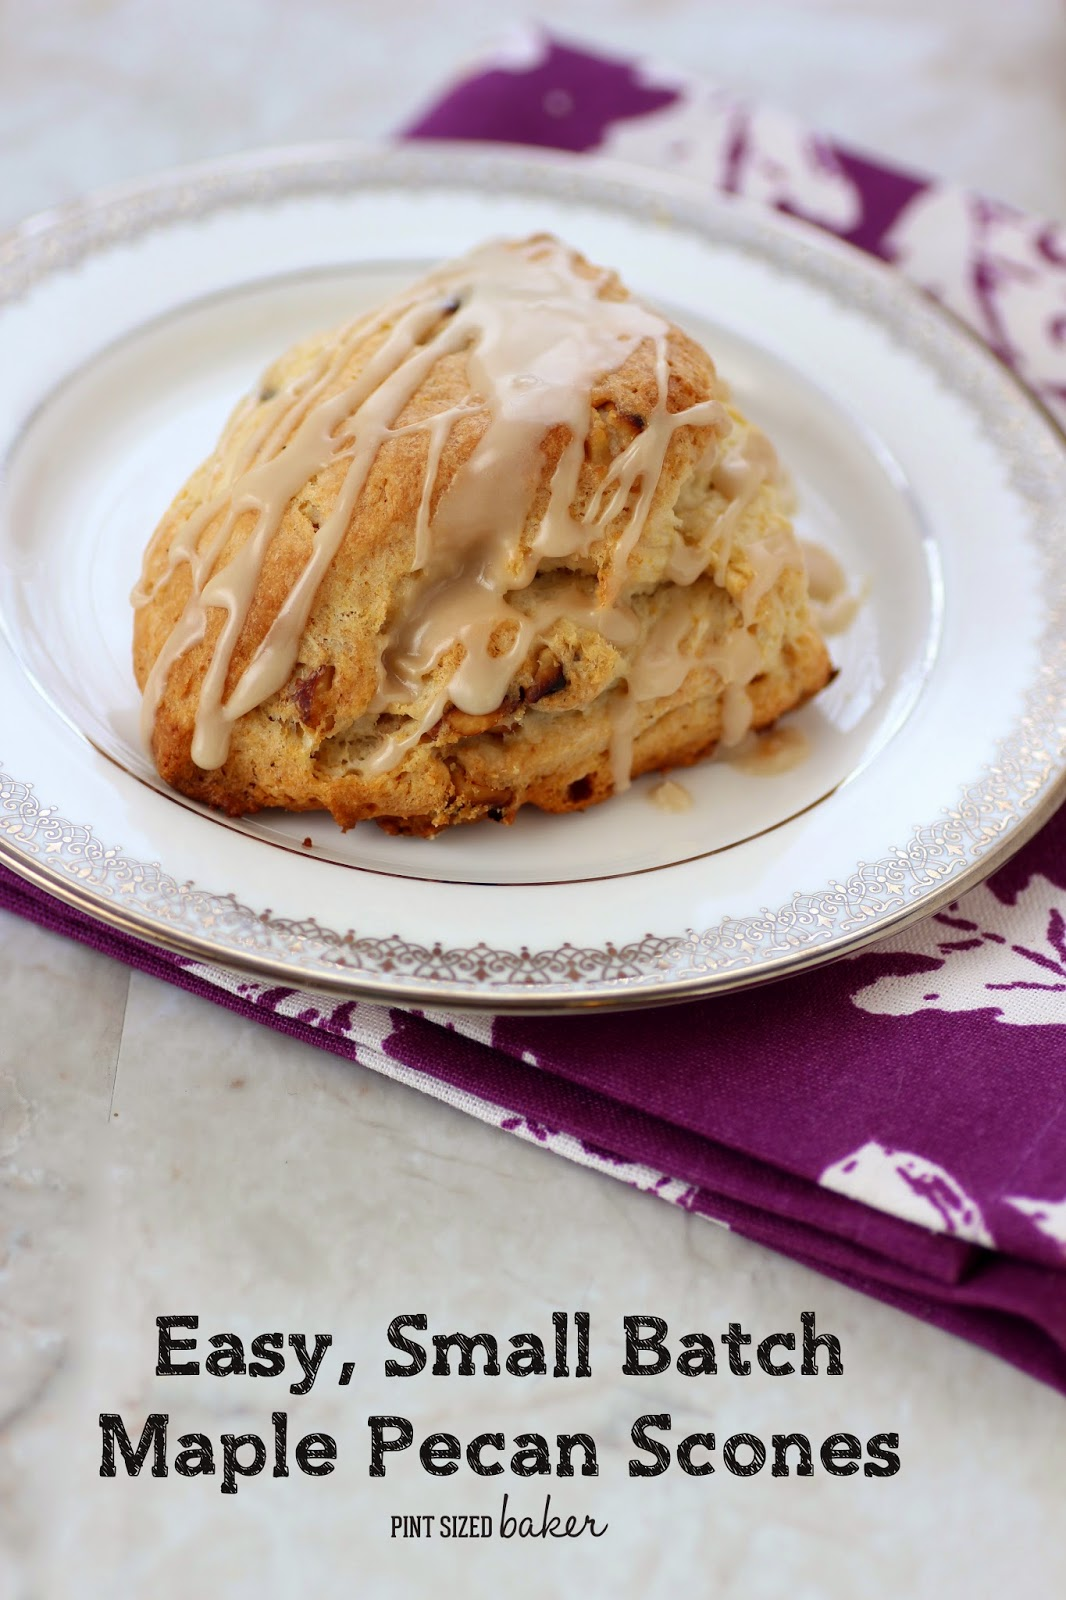 A quick an easy recipe for Maple Pecan Scones. Makes just 4 - perfect for an easy weekend breakfast.